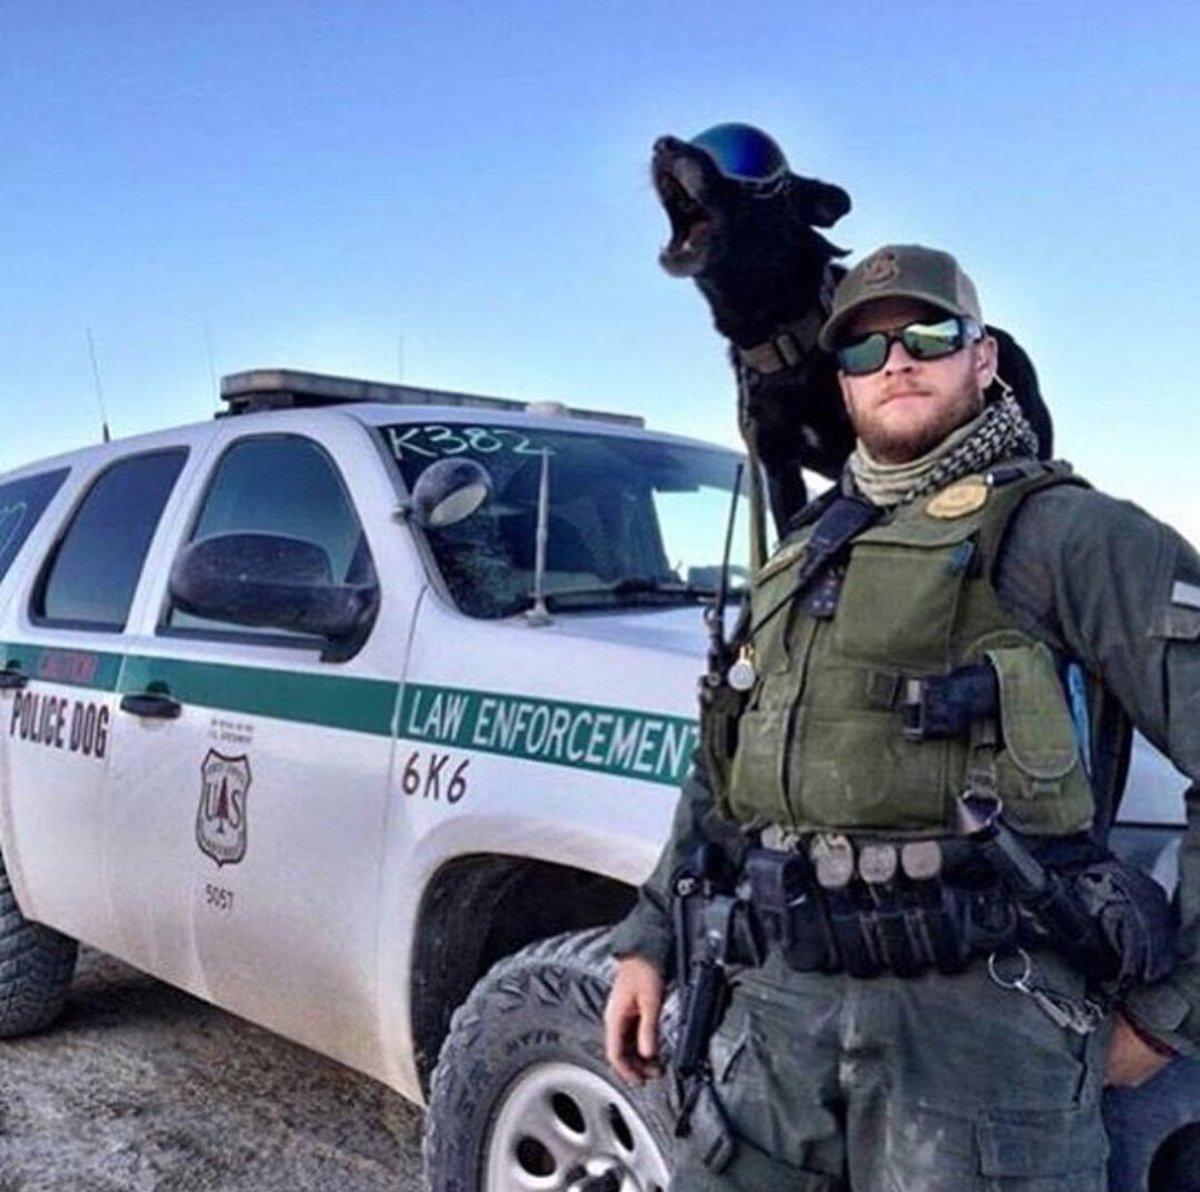 Not to exceed 1,000 special agents and law enforcement officers of the forest service when in the performance of their duties shall have authority to—. United States Forest Service Officer Zoho And K9 Jacky 1200 X 1192 Policeporn